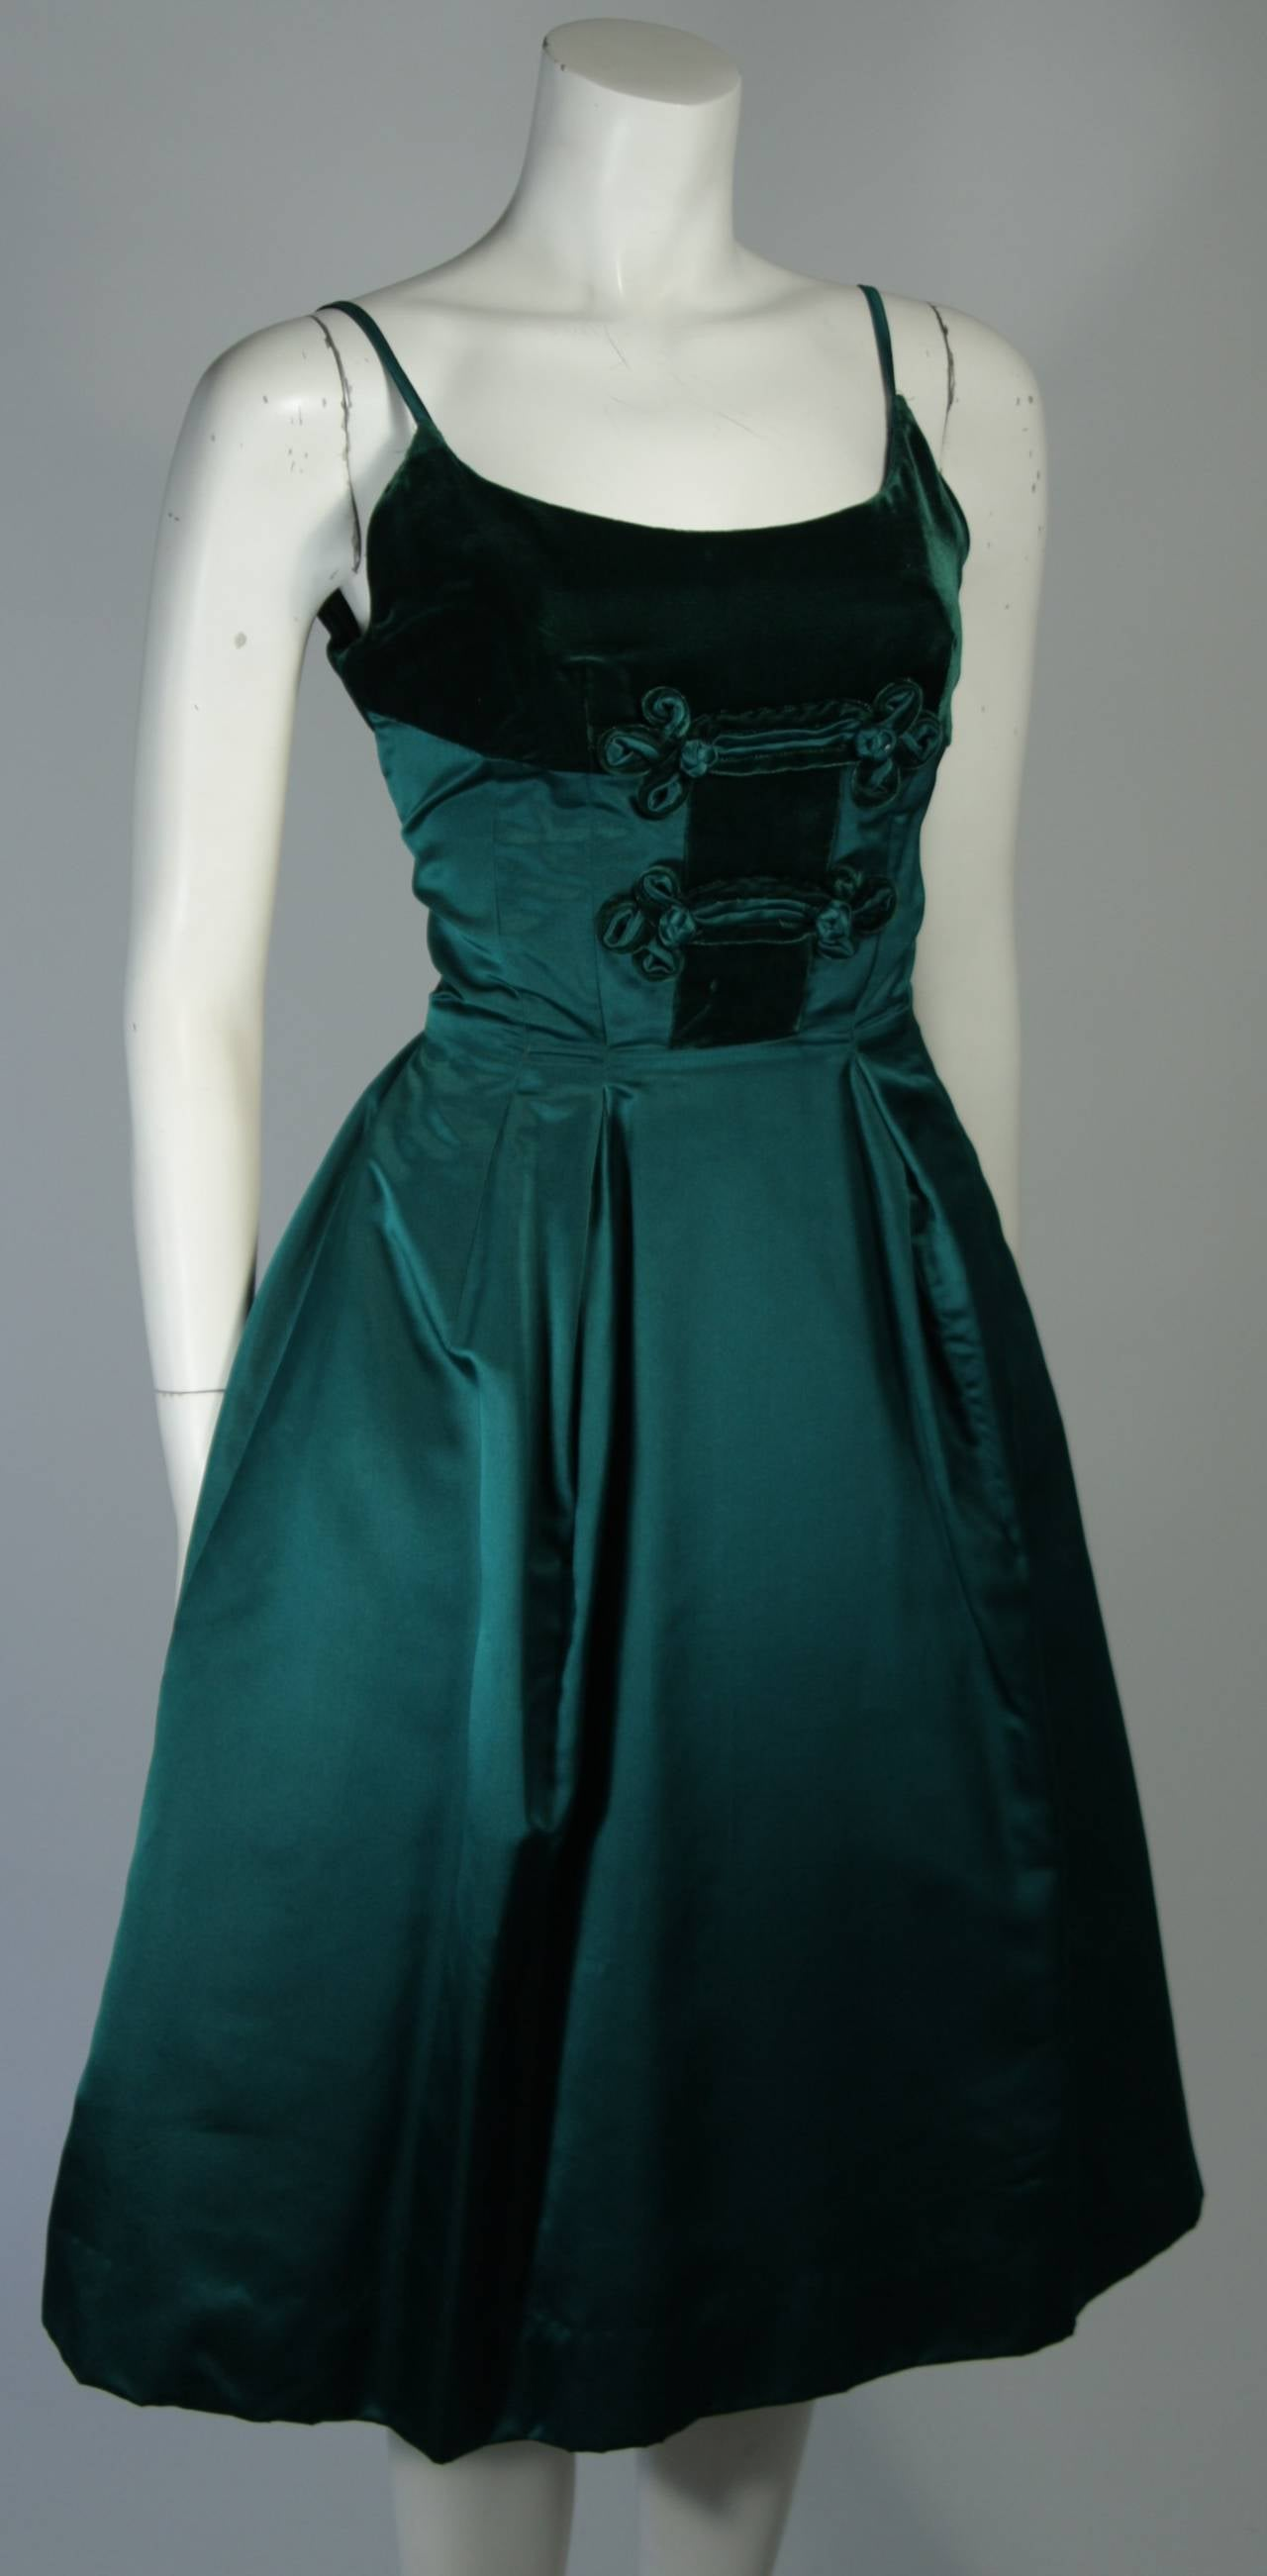 Women's Oleg Cassini Emerald Silk and Velvet Applique Dress Size Small For Sale